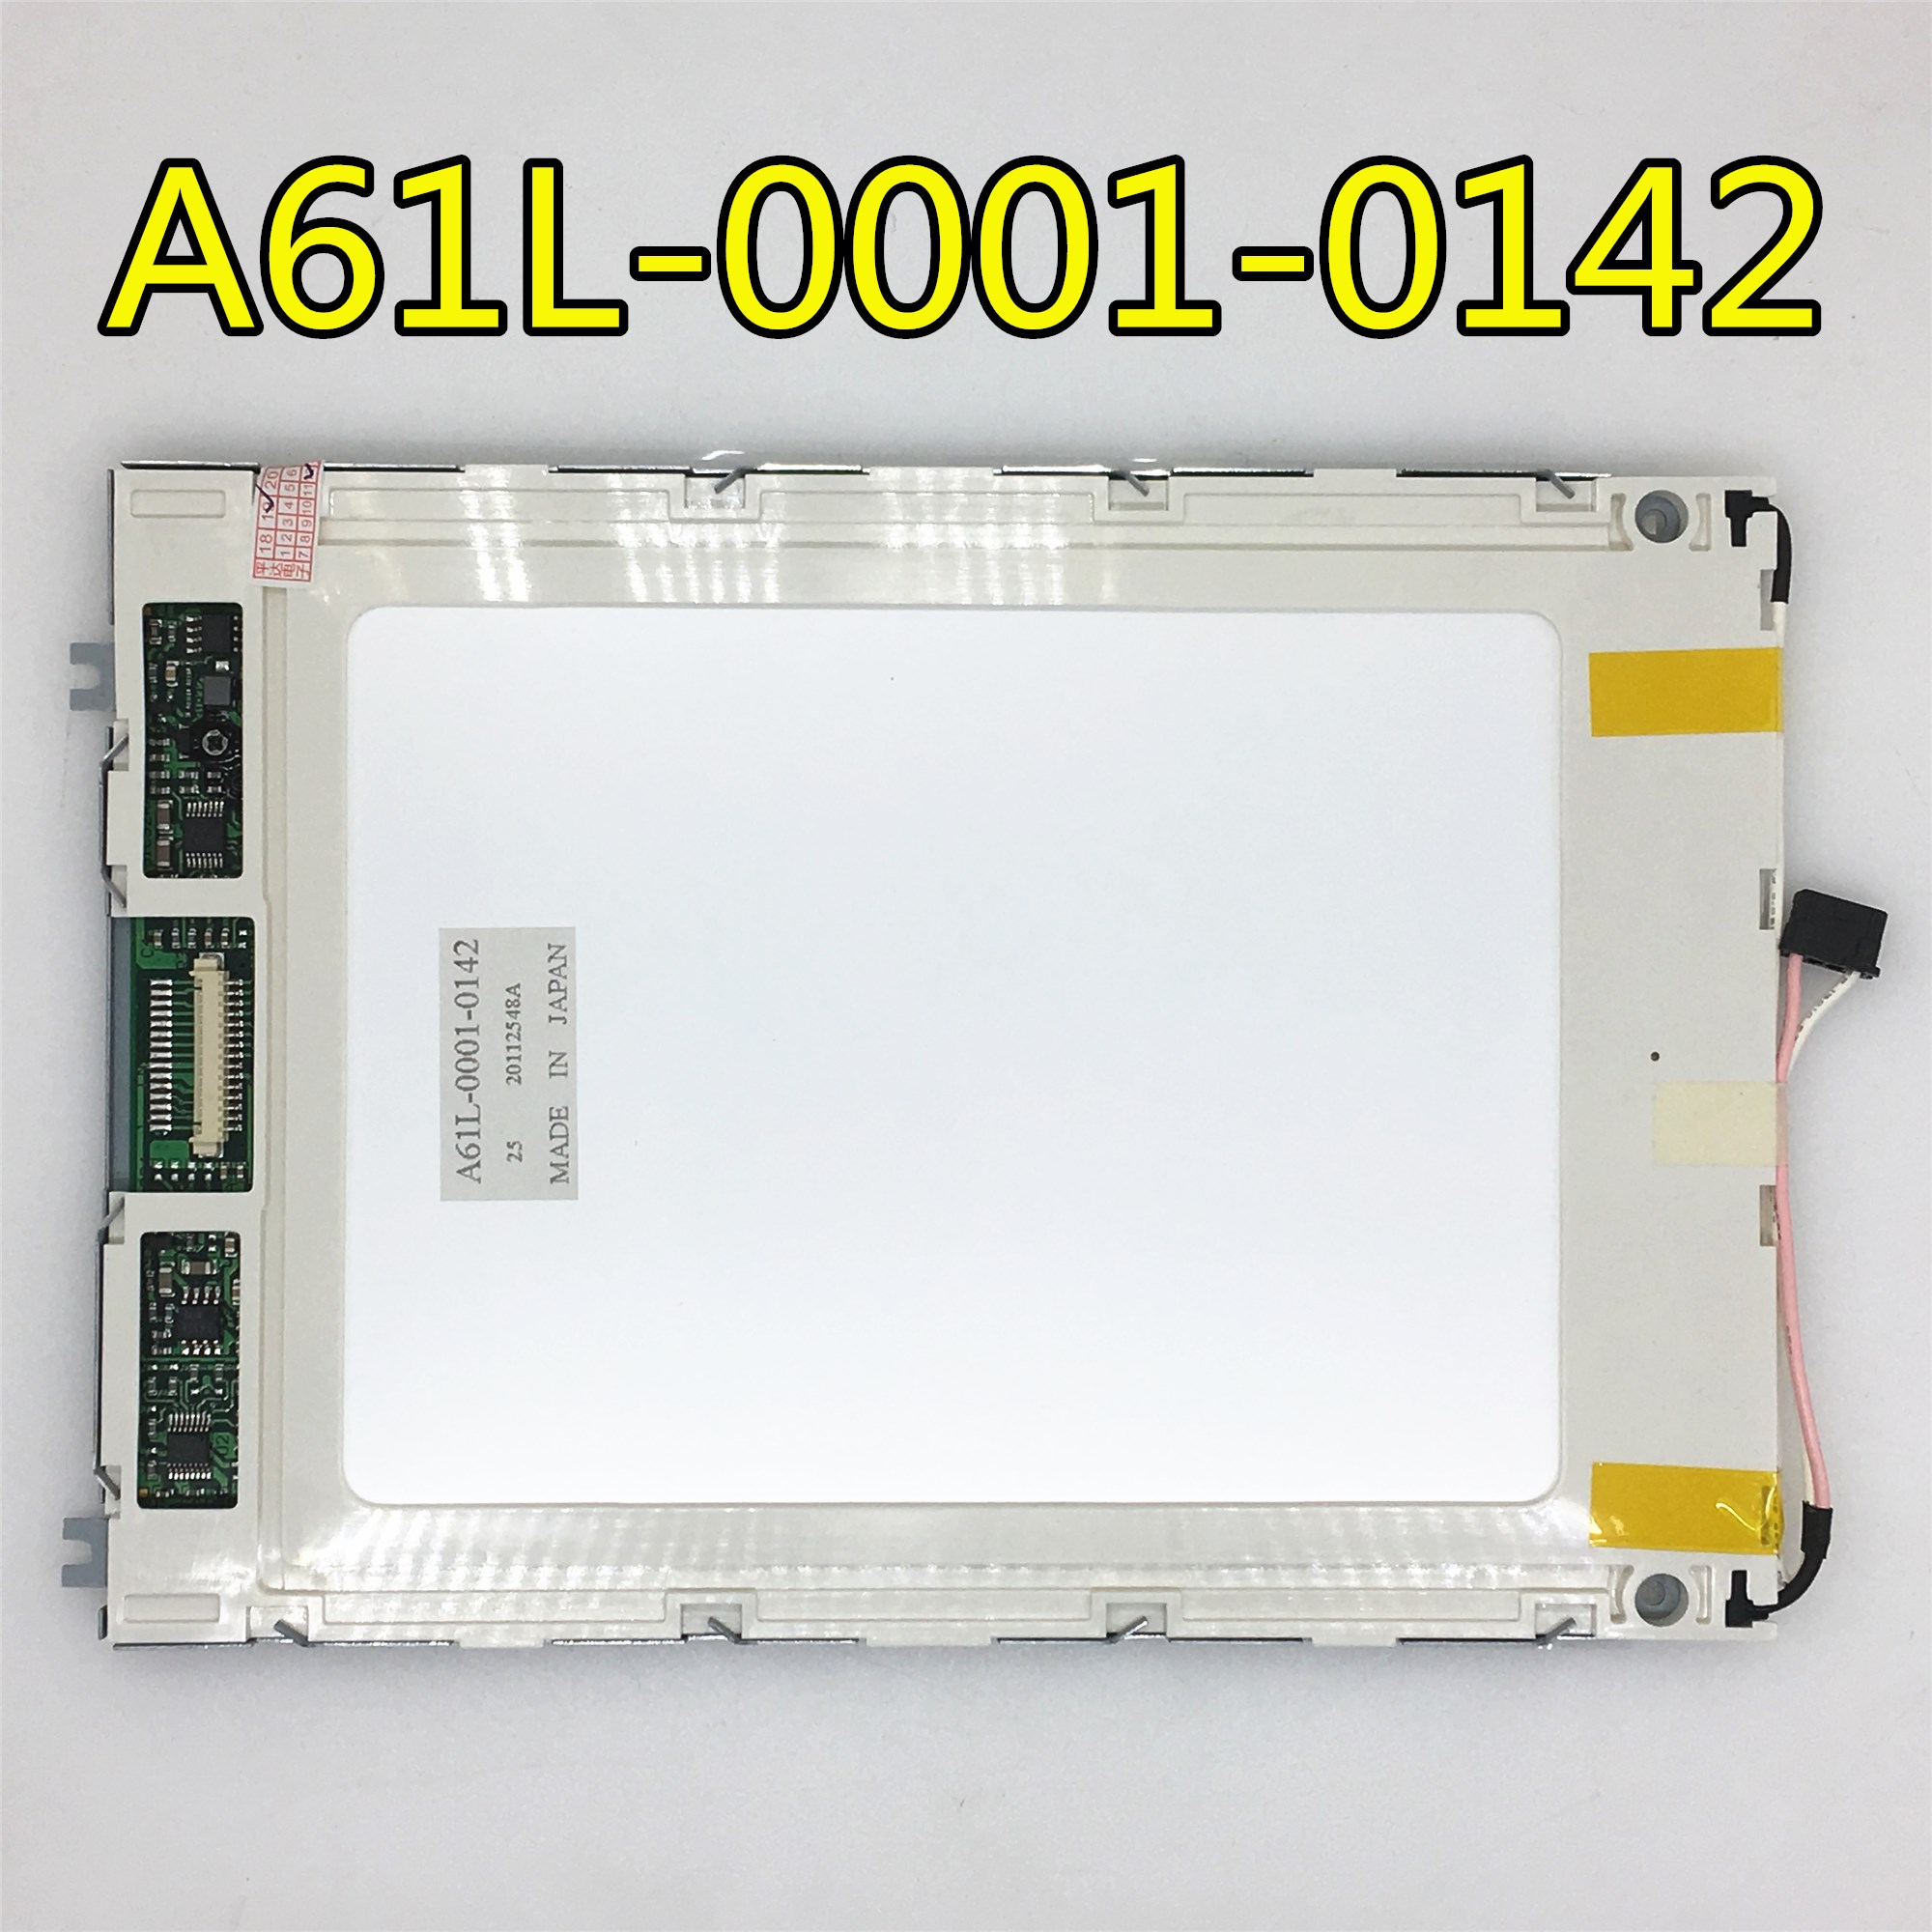 Can provide test video , 90 days warranty A61L-0001-0142 7.2inch lcd panel with 90days warranty